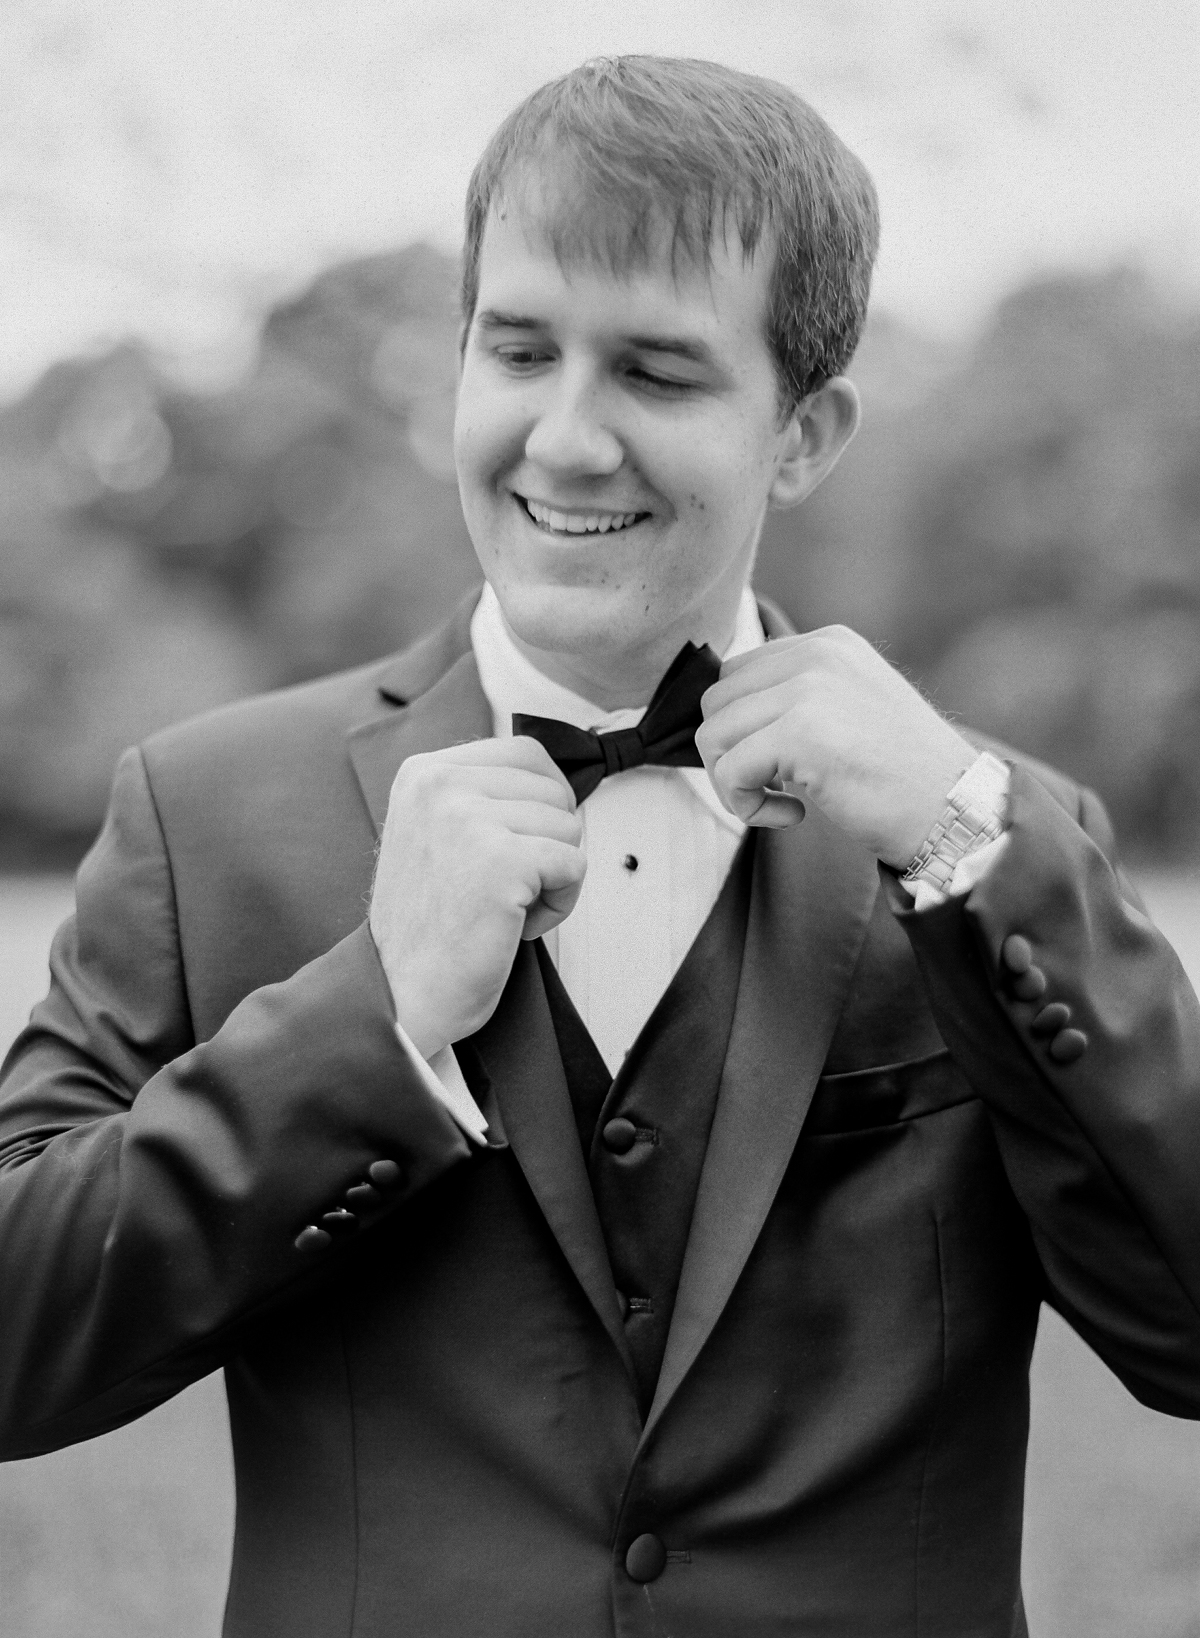 Groom Black Bowtie | Fine Art Crestview Florida Wedding | Jennifer Blair Photography